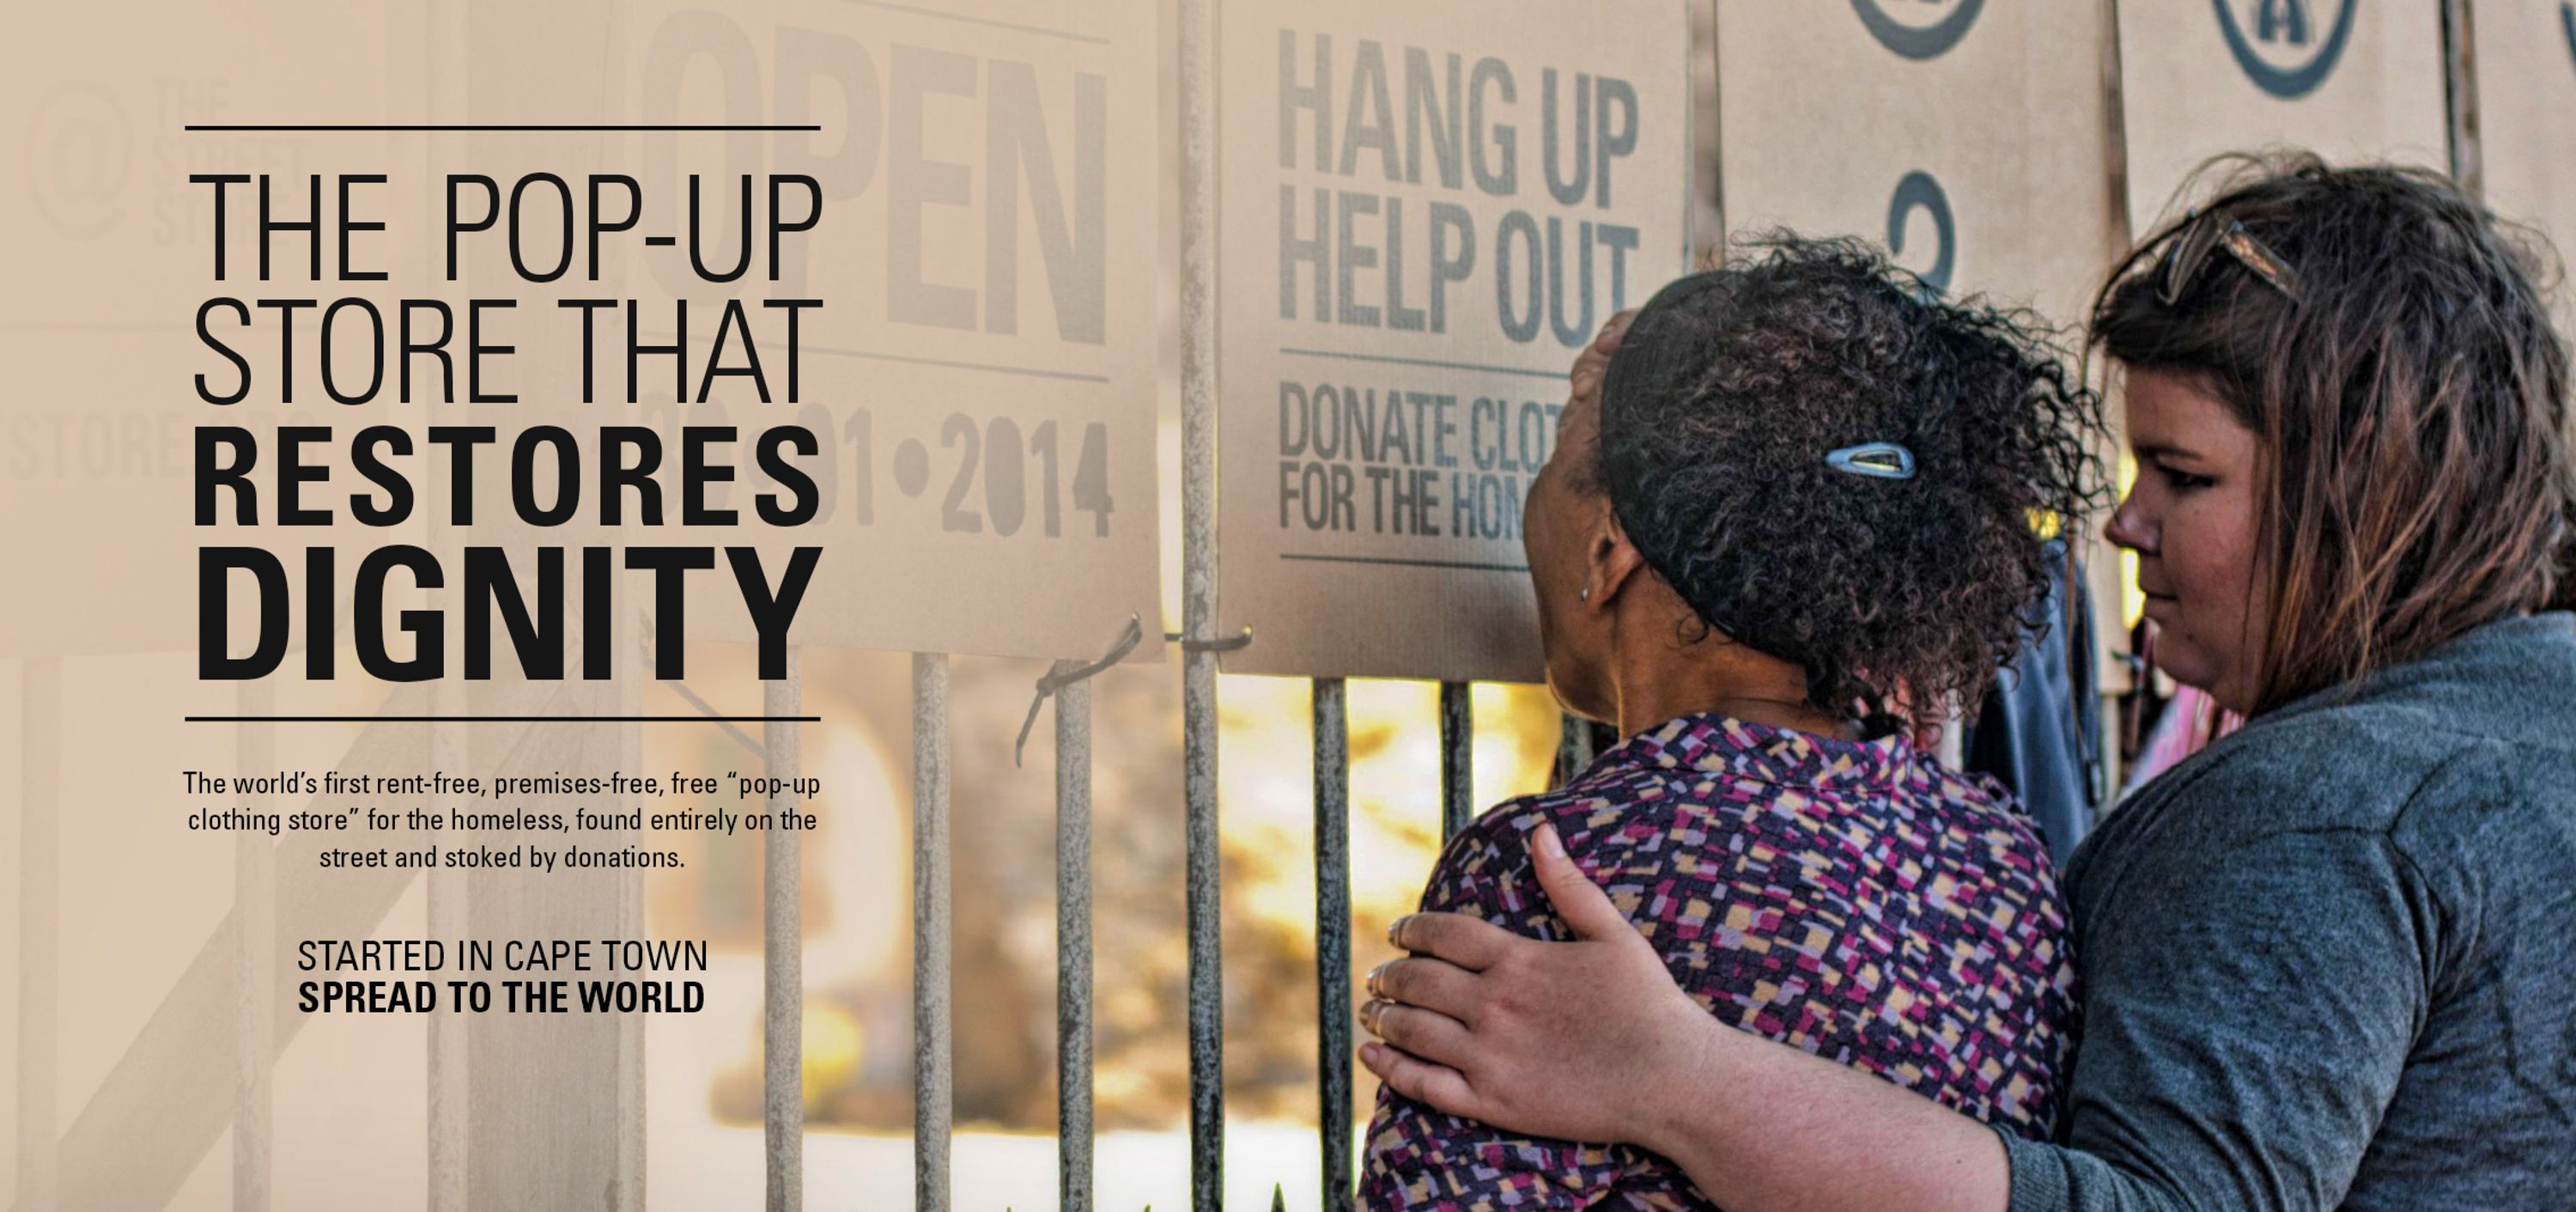 The Street Store   Advertising for Humanitarian Aid Ideas   Award-winning creative social good campaigns   Helping the homeless clothing project   D&D Impact